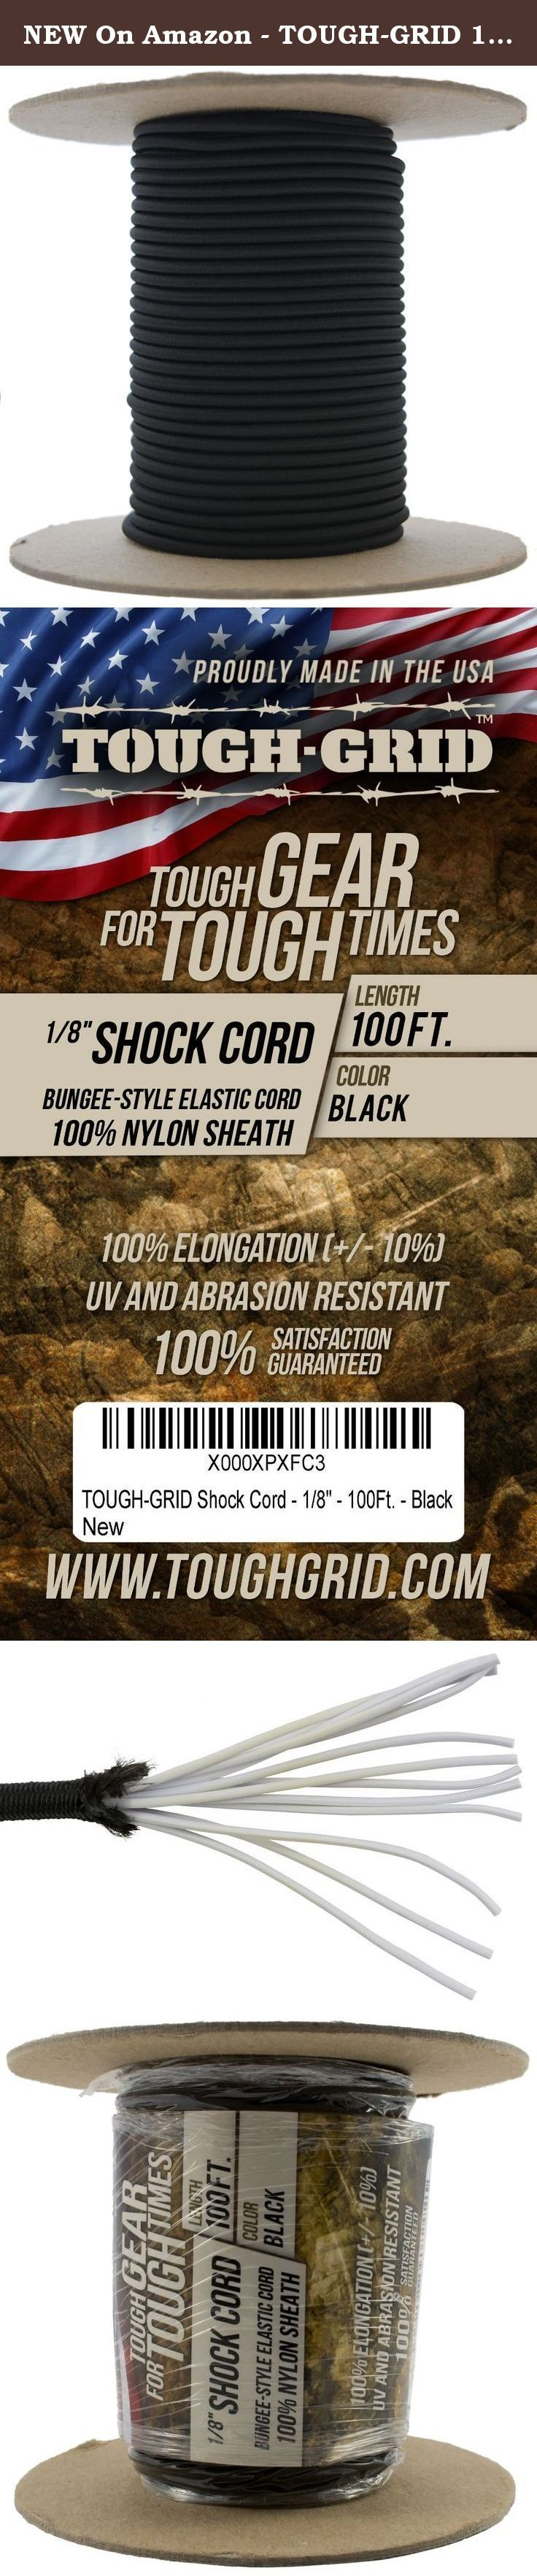 """NEW On Amazon - TOUGH-GRID 1/8"""" Shock Cord - 100% Stretch! Great for Emergency Supply, Hiking, and Crafts - 100% Nylon Sheath for Superior Quality - Made In USA. 100Ft. - Black. 100% Elongation 1/8"""" Shock Cord or """"Bungee Cord"""" No Need to Break the Bank When You Can Get Superior Shock Cord at a Bargain Price! - Ideal for fixing tent poles, shoe laces, necklaces, crafts, securing items, and replacing the deck bungee cords on your kayak! - Measures 1/8"""" With a 100% Nylon Outer Sheath and 12..."""